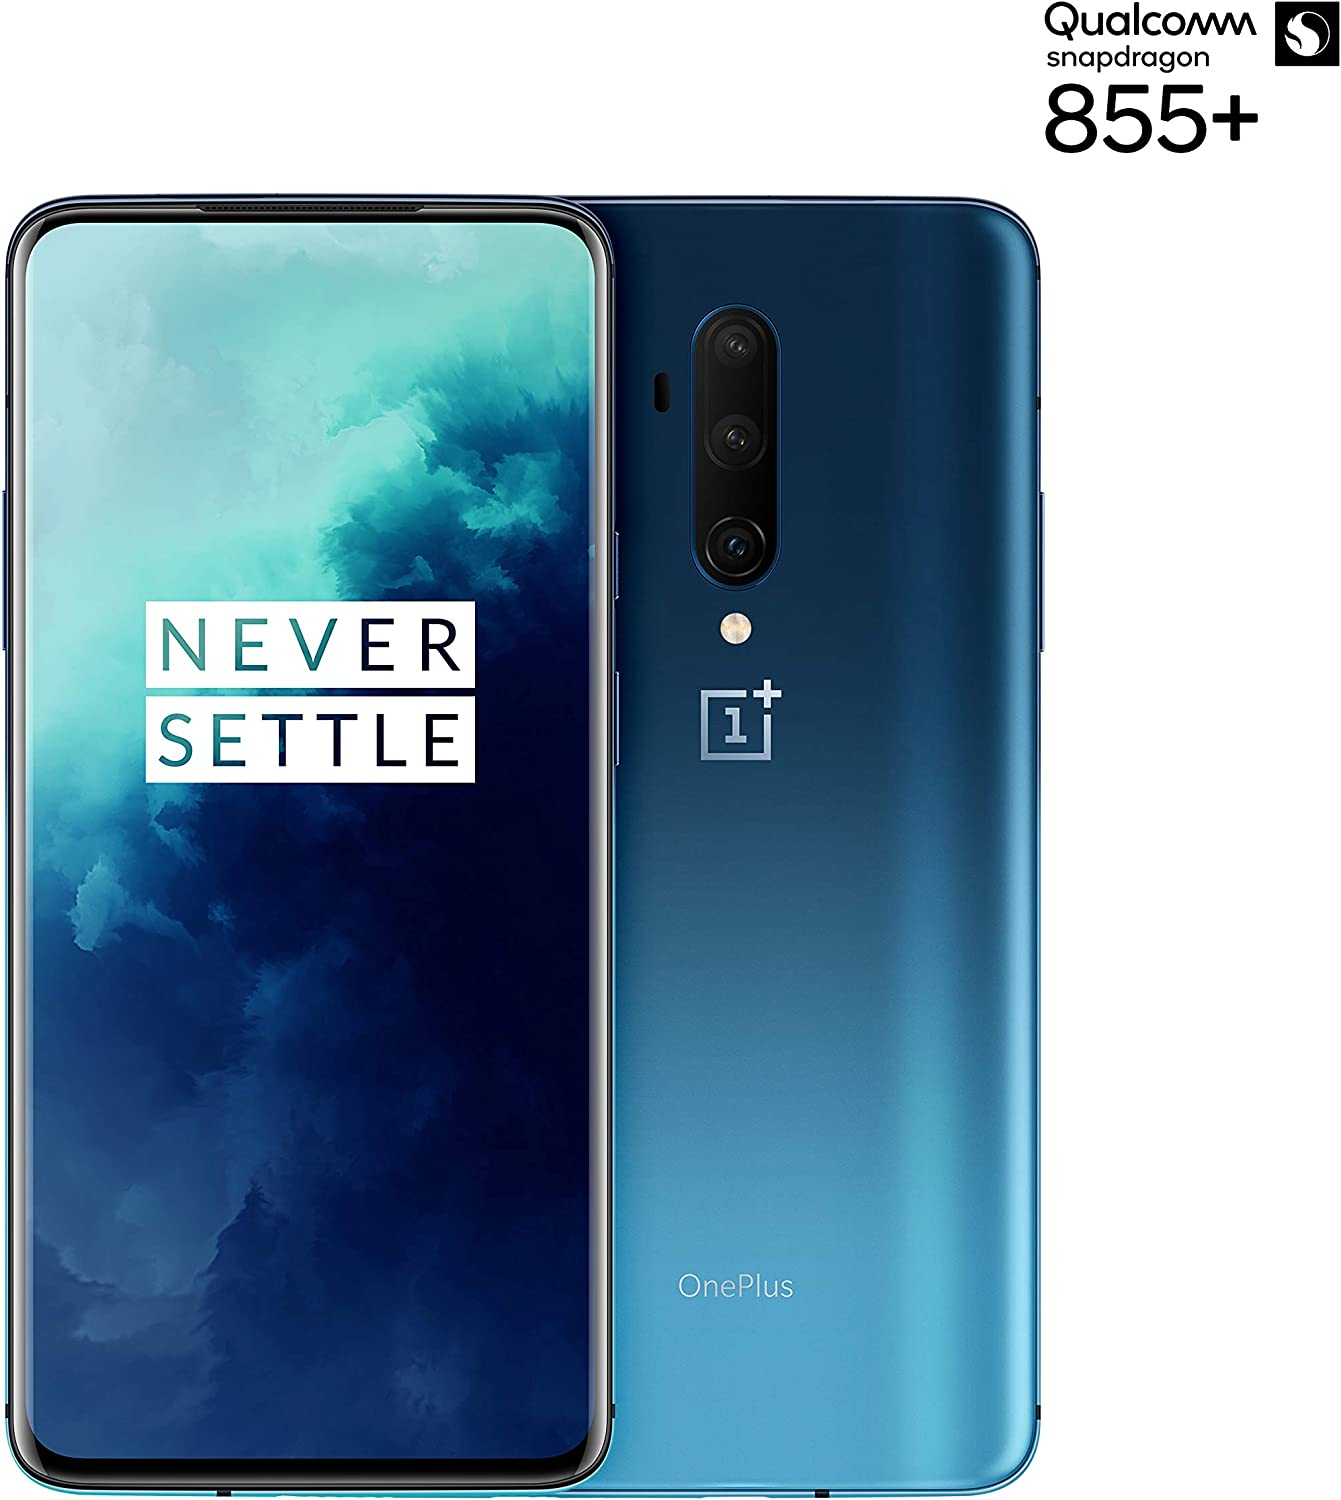 OnePlus 7T Pro, Pantalla AMOLED de 90Hz, 8GB RAM + 256GB de Almacenamiento, Triple Cámara + Pop-Up Cámara, Warp Charge 30T, Bluetooth, Android, 16.9